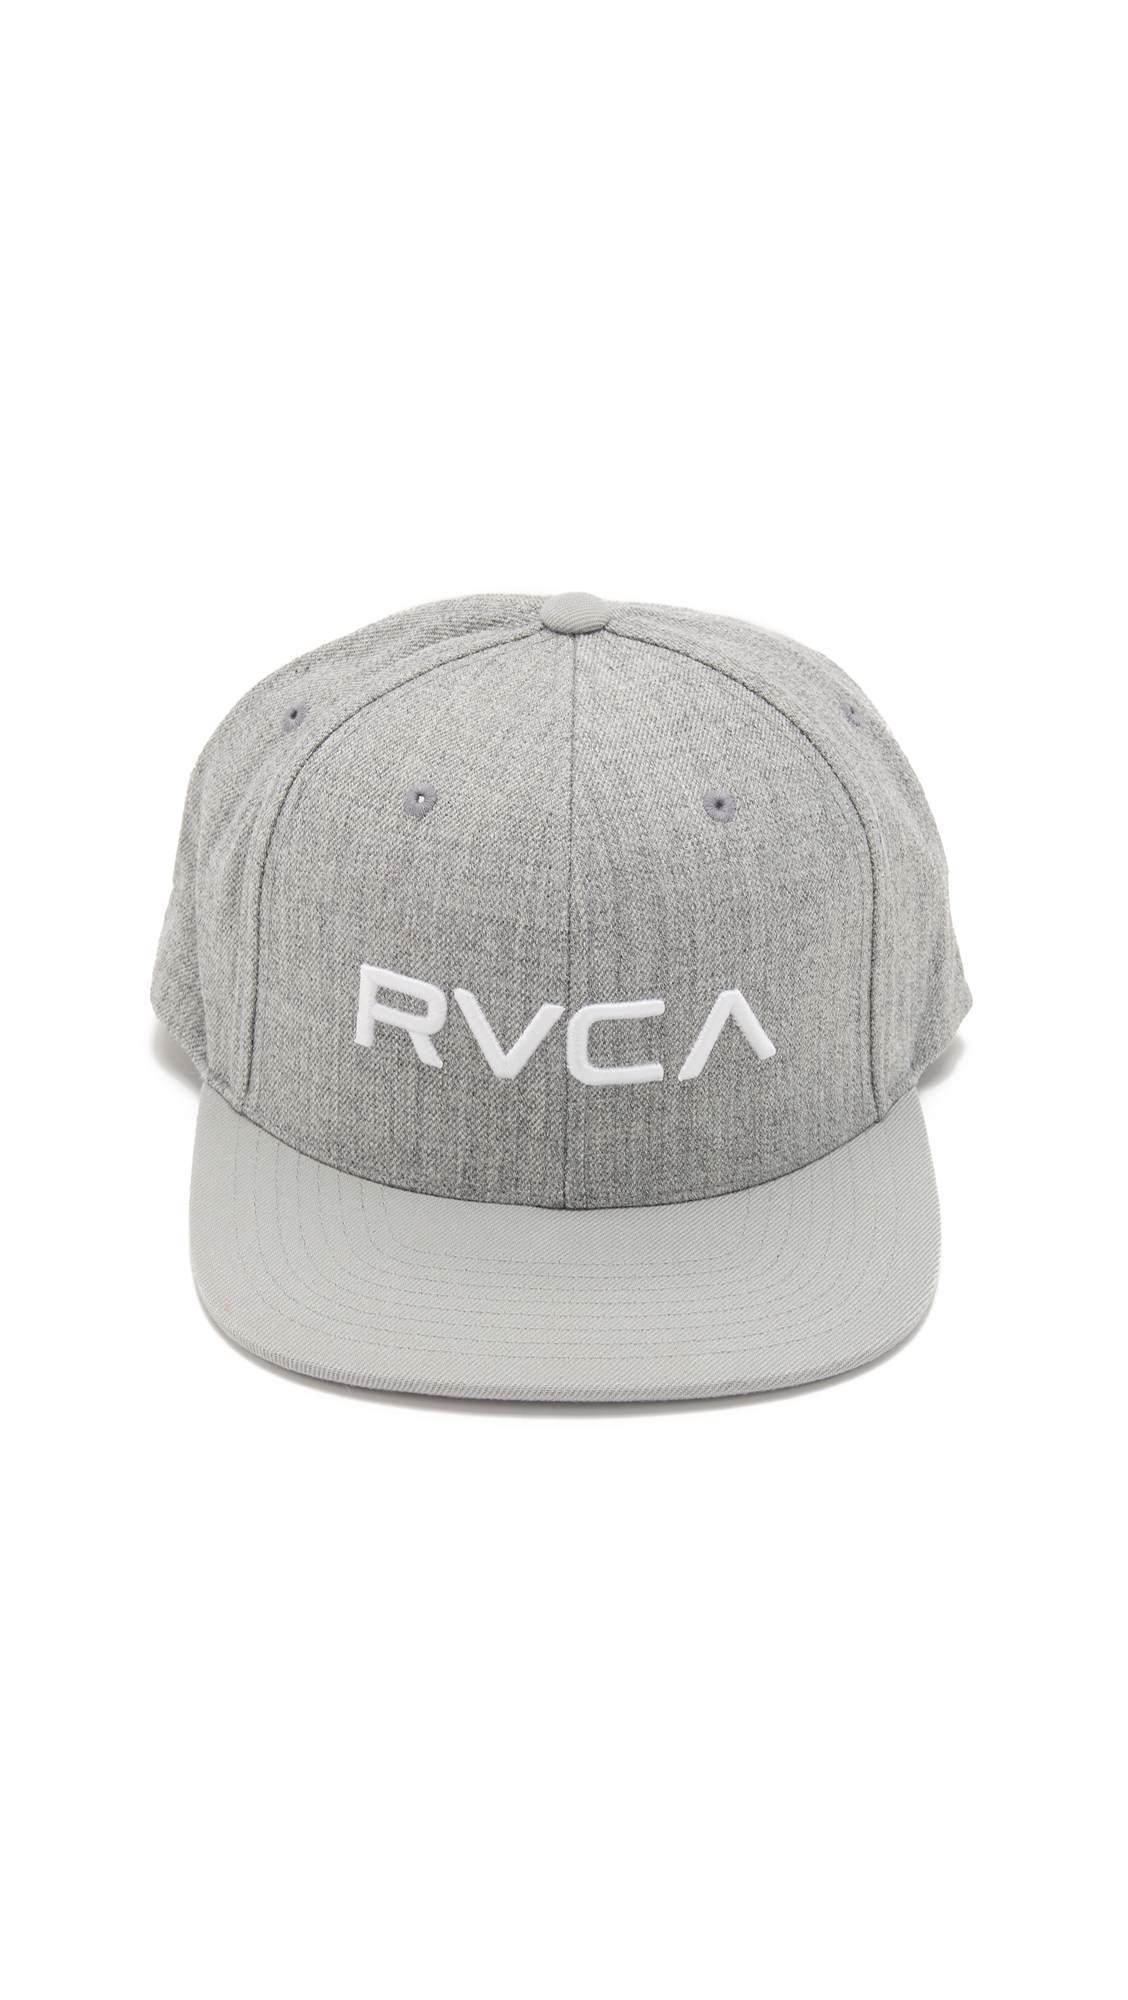 finest selection 8925d bfaf9 Lyst - RVCA Twill Snapback Iii in Gray for Men